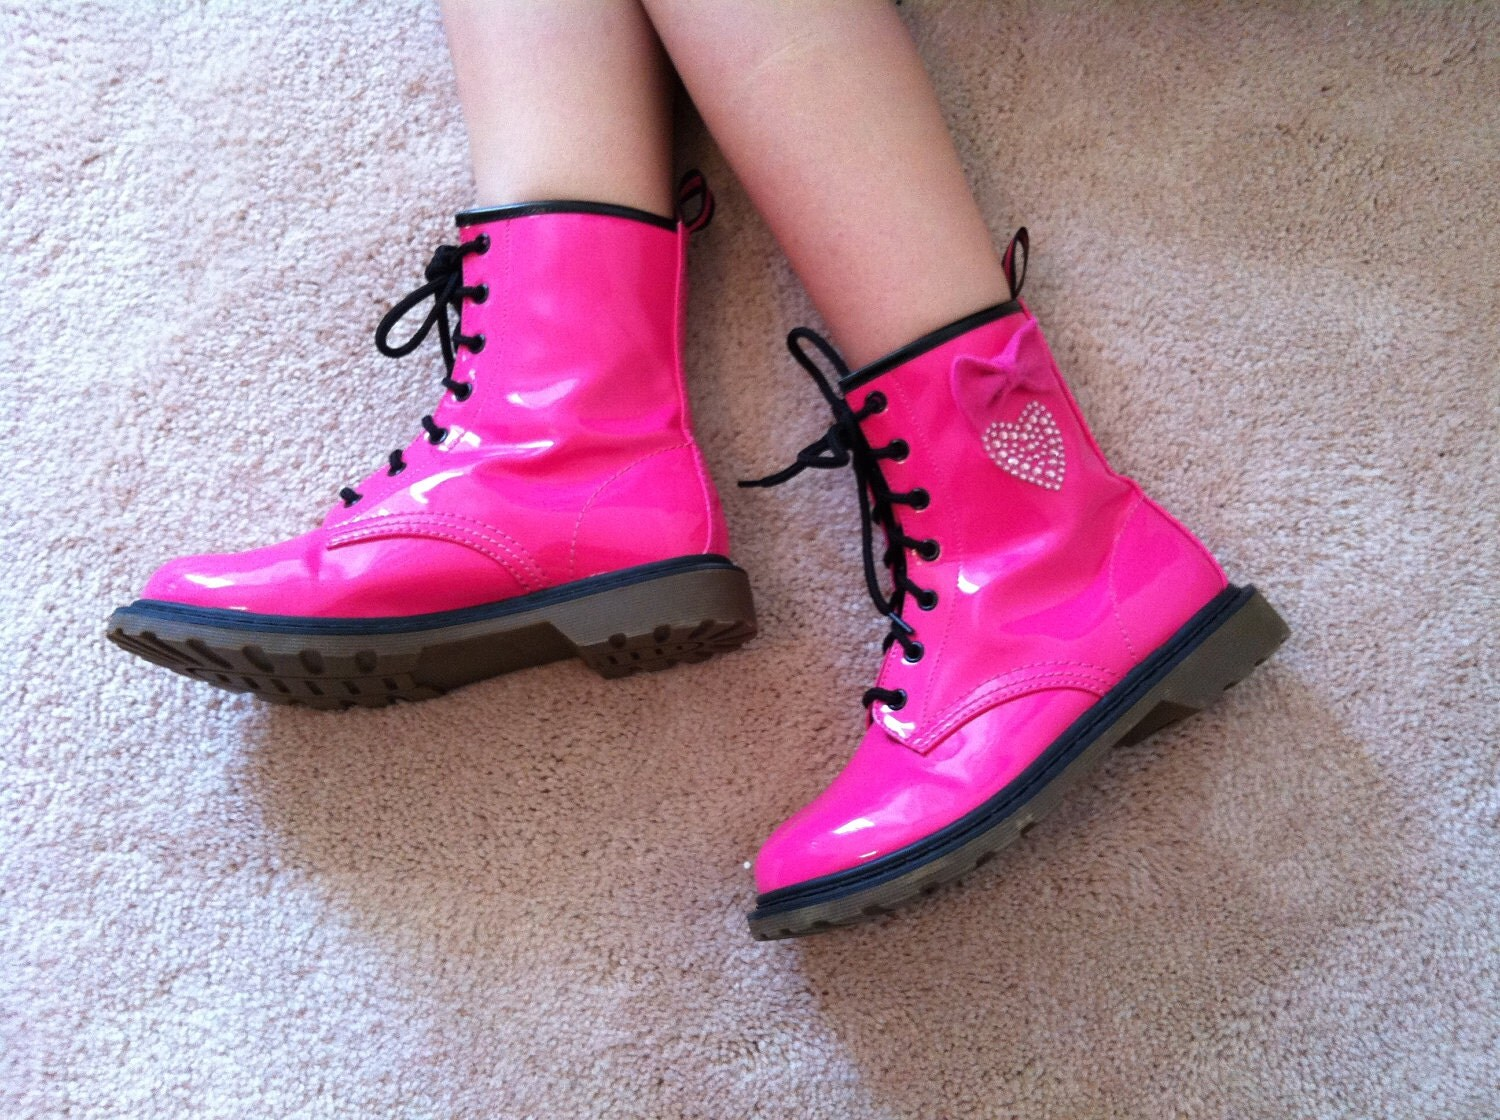 Similiar Pink Combat Boots For Girls Keywords